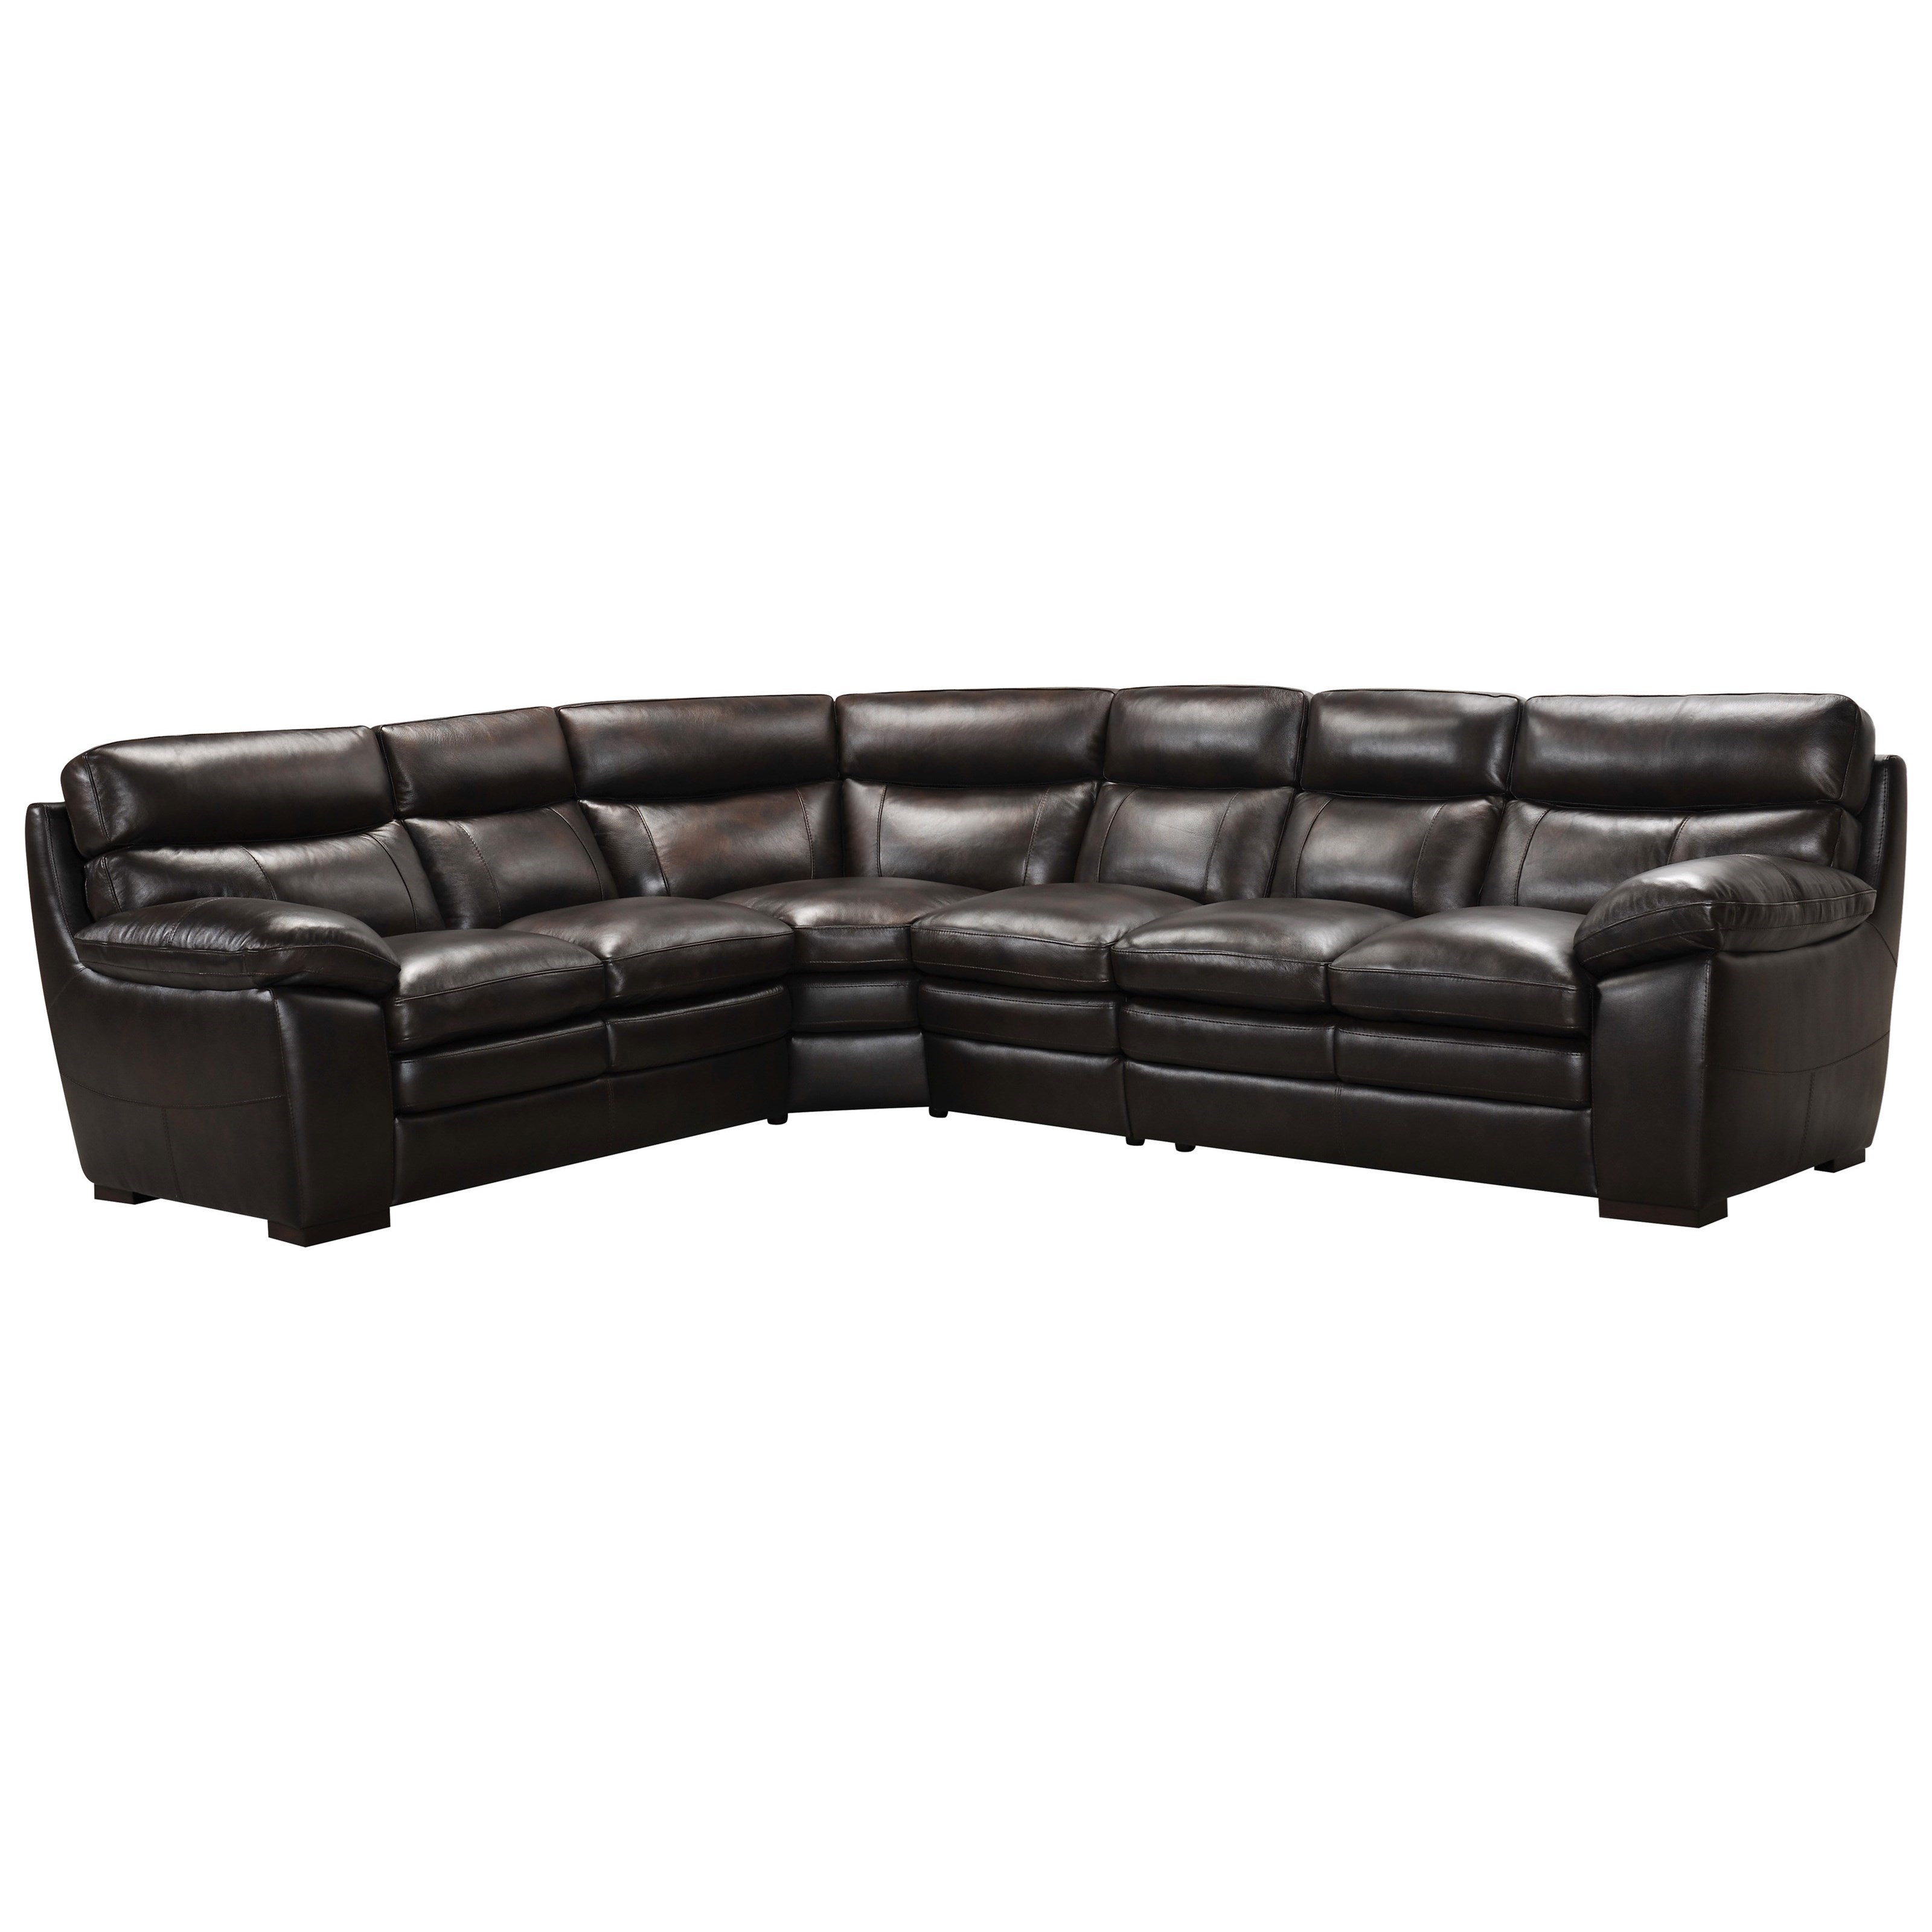 3658 4-Pc Sectional Sofa by Violino at Furniture Superstore - Rochester, MN